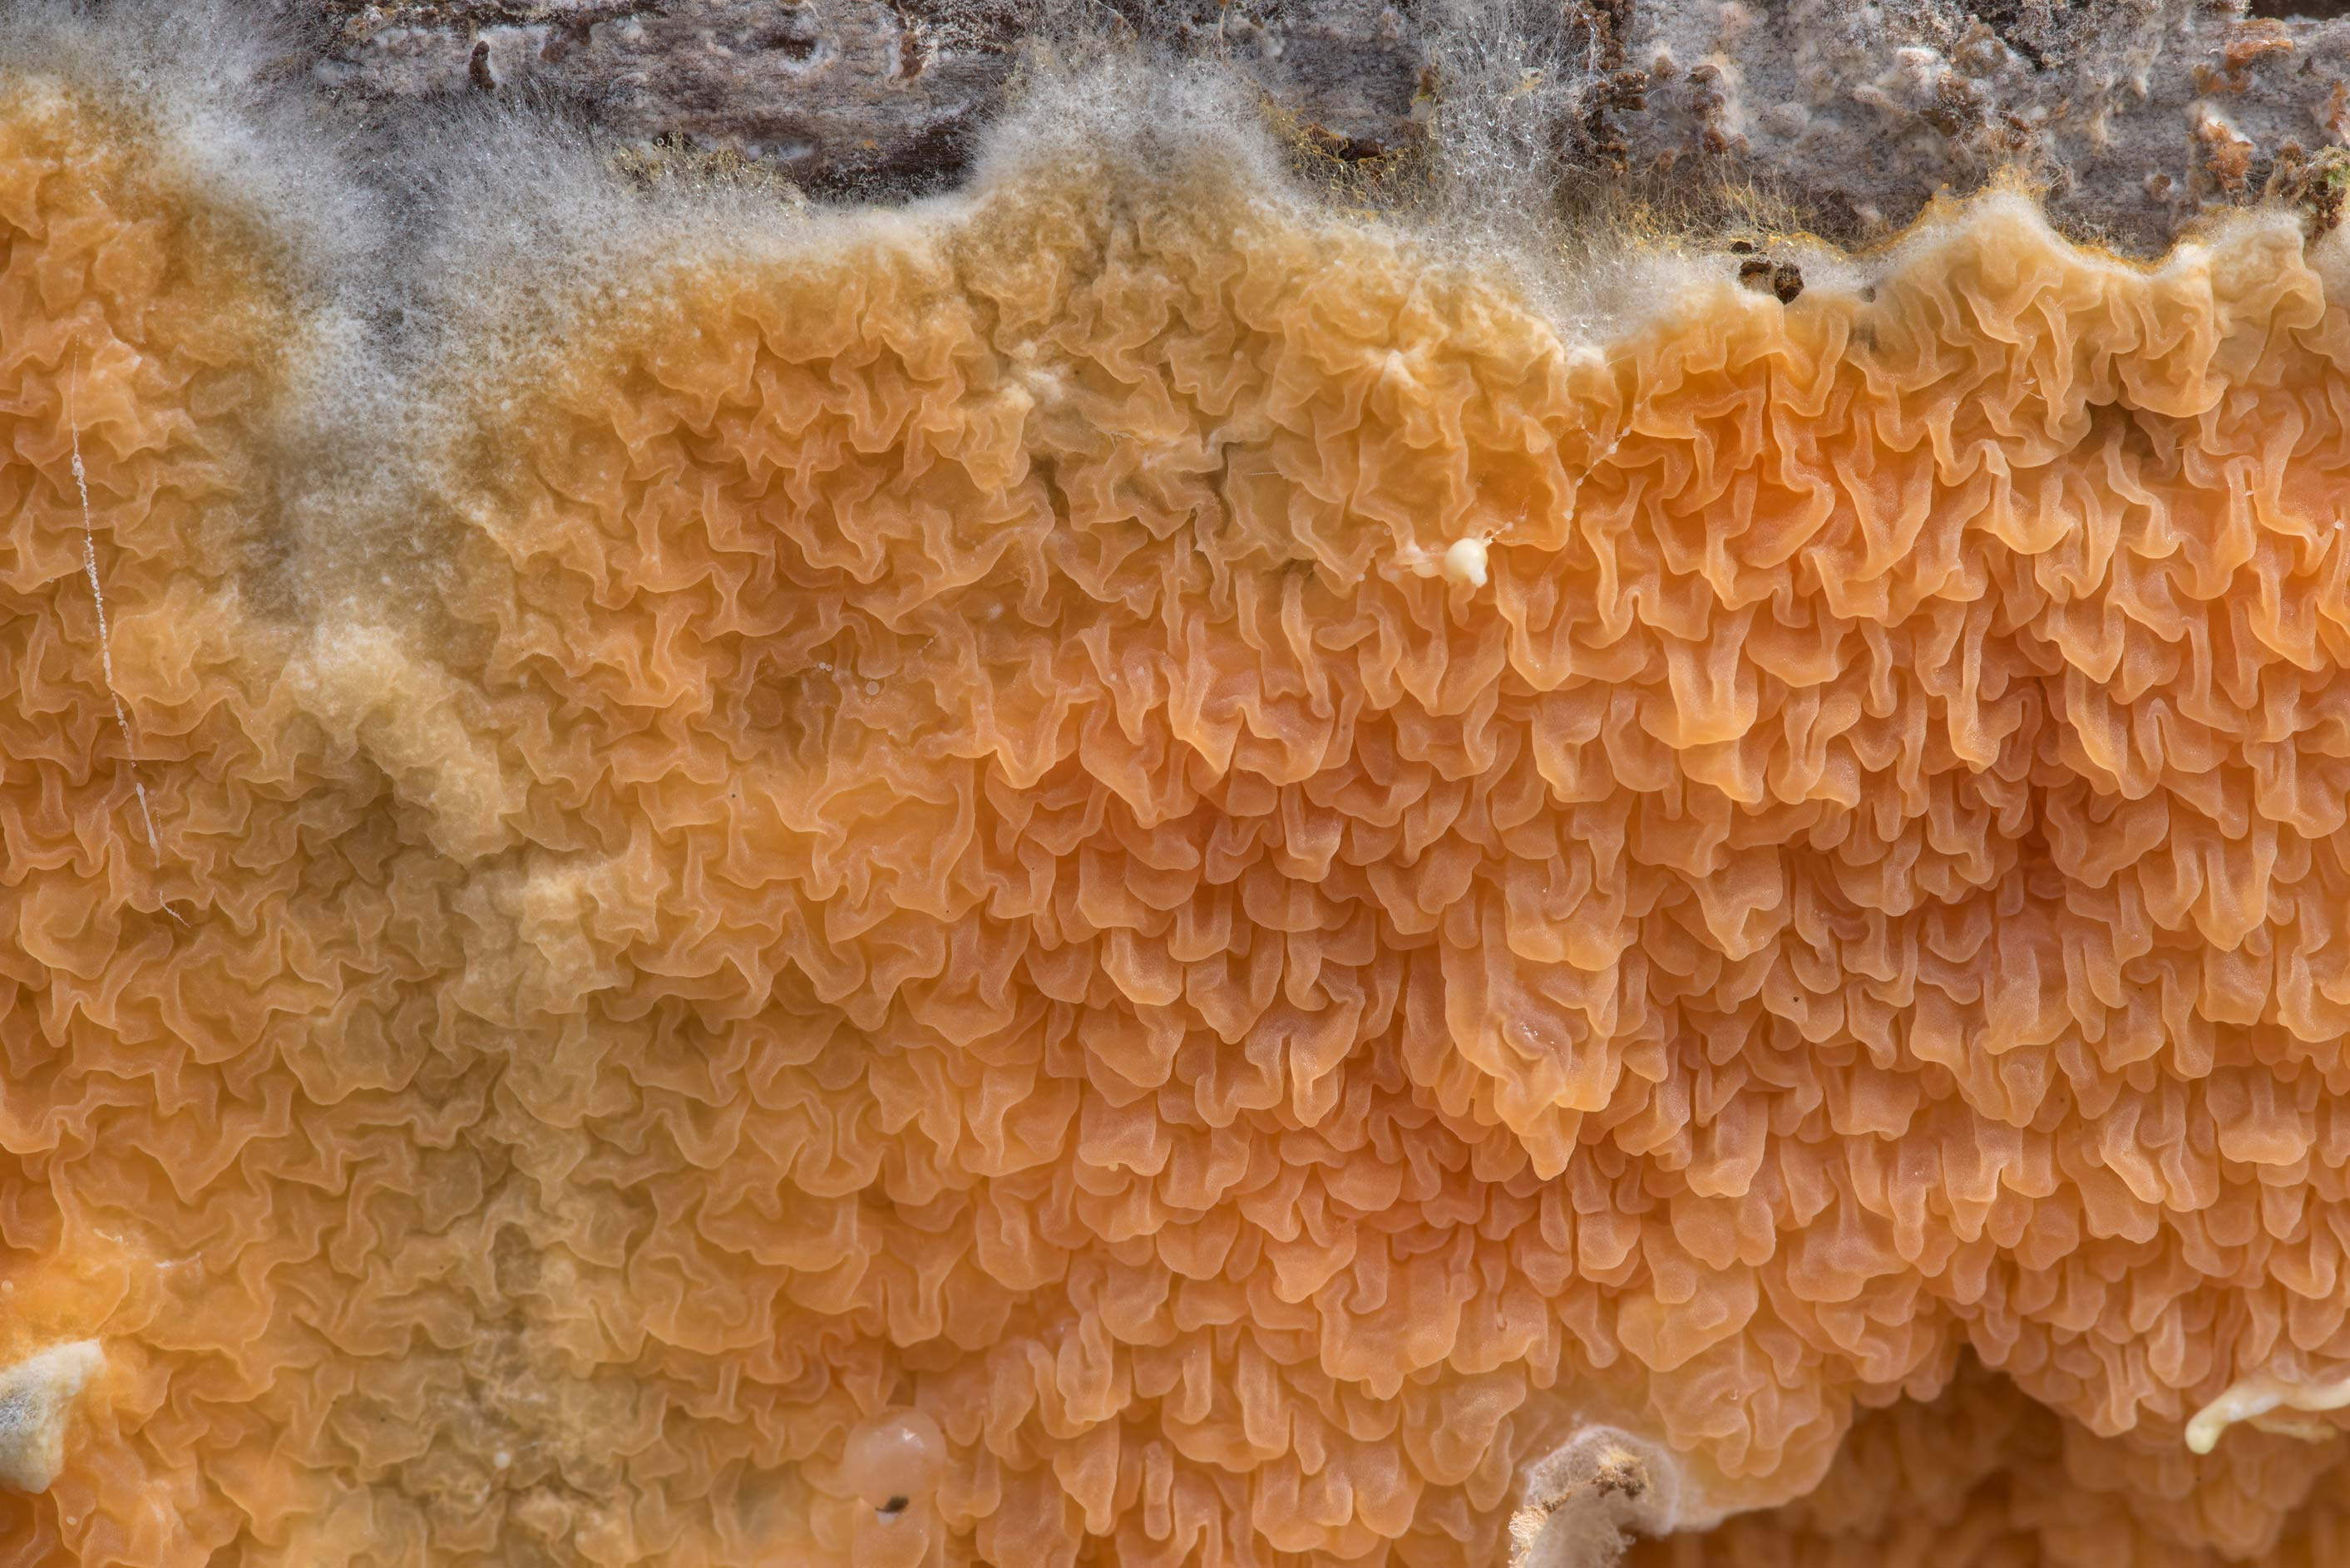 Texture of warped crust fungus Leucogyrophana...Forest north from Montgomery. Texas